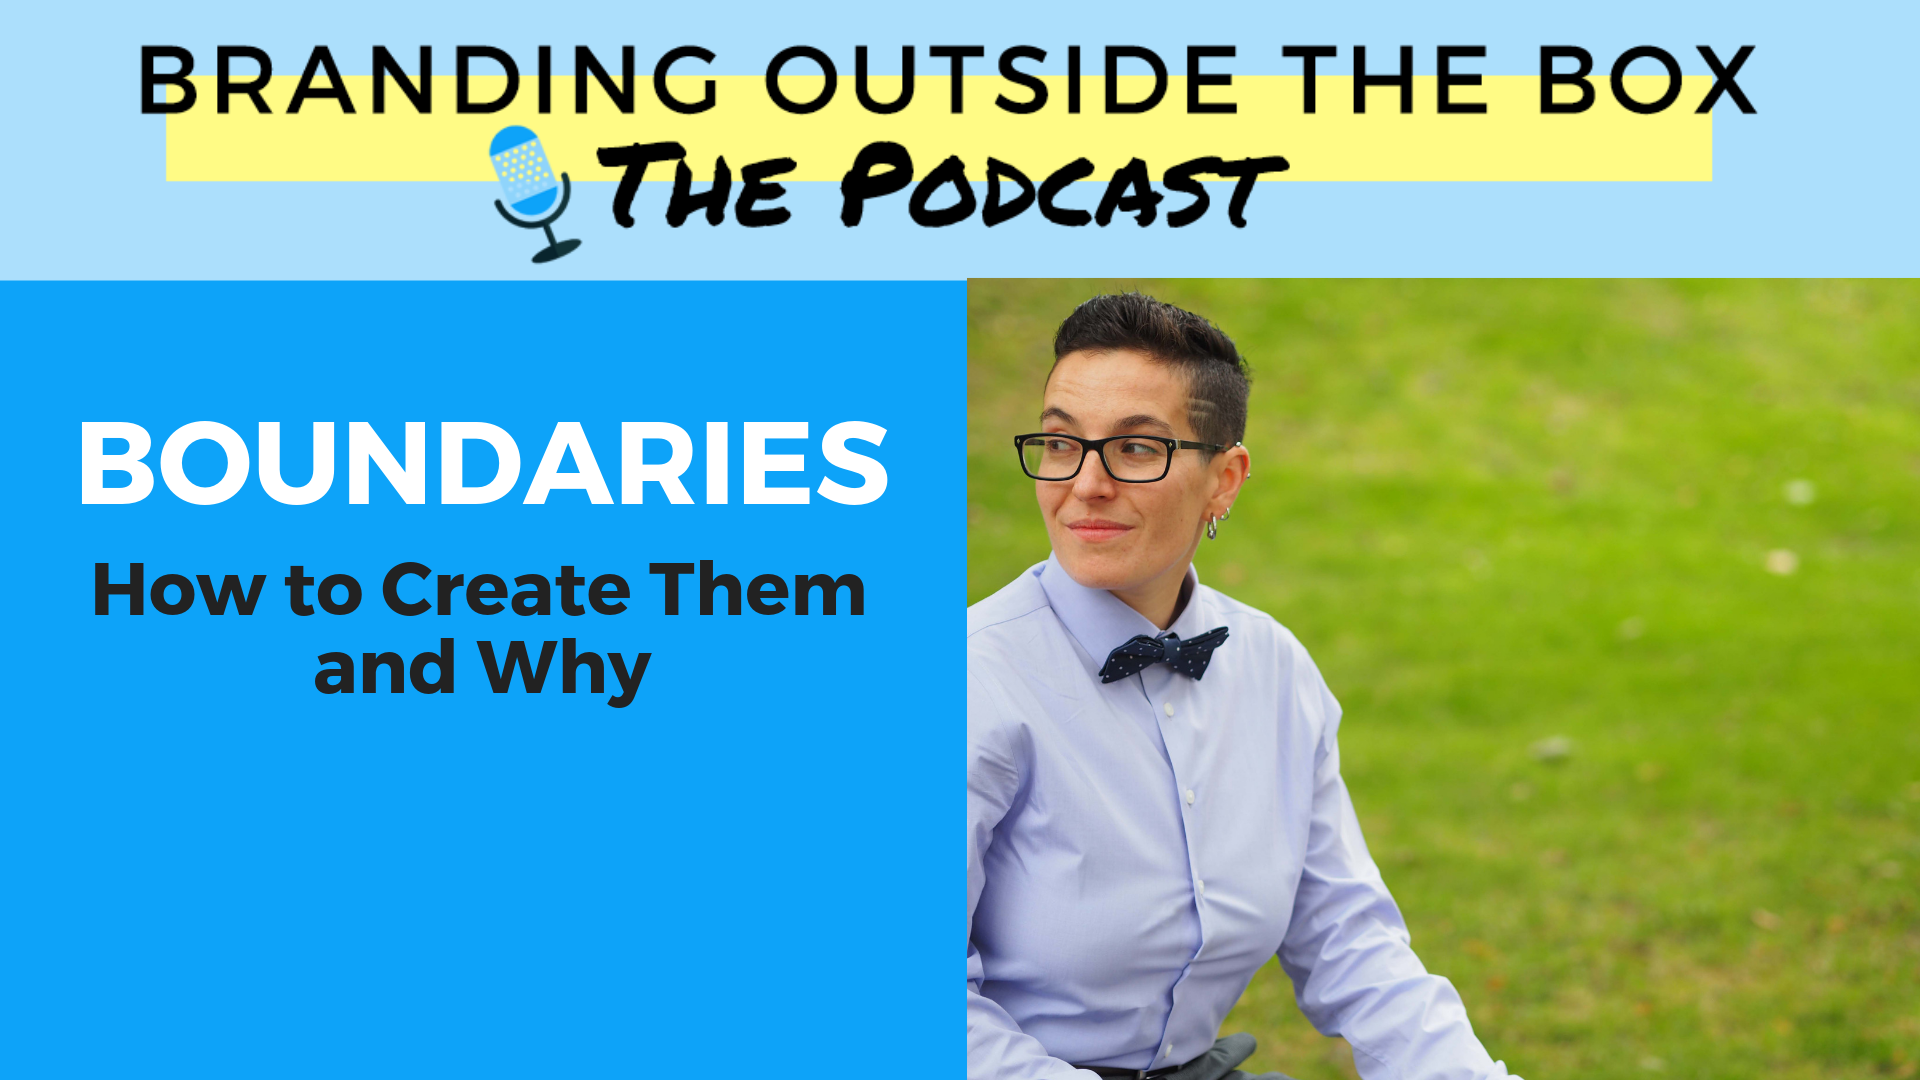 Boundaries: How to Create Them and Why